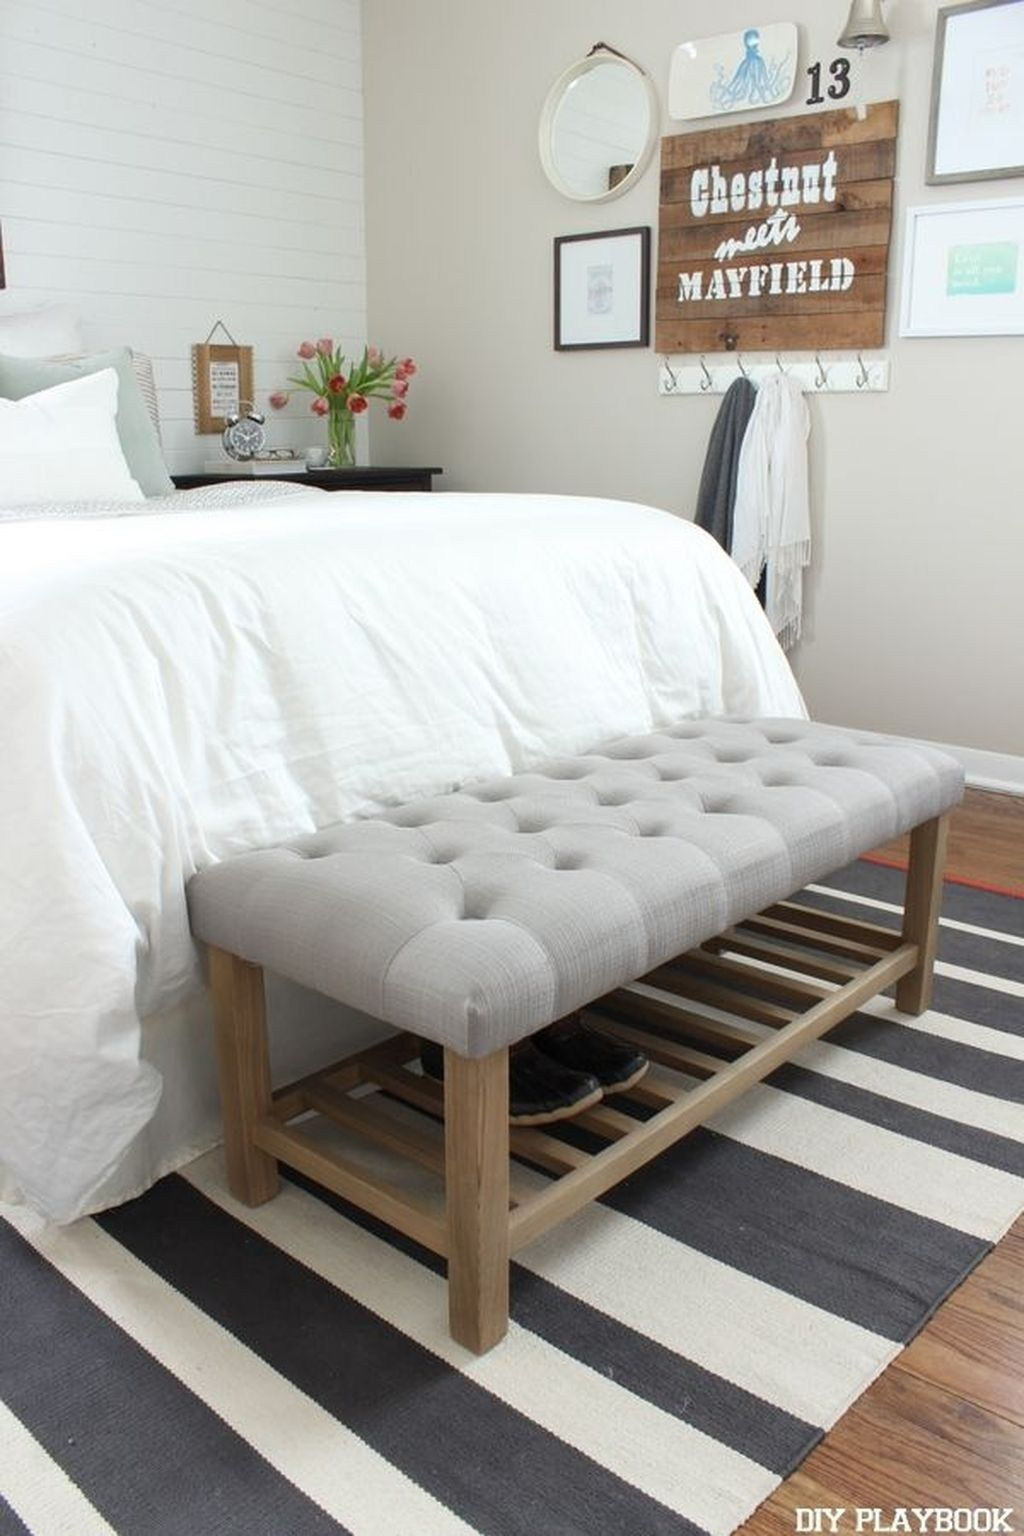 Gorgeous Diy Home Bench Project Ideas That You Love10 Homemade Bedroom Bedroom Diy Apartment Bedroom Decor